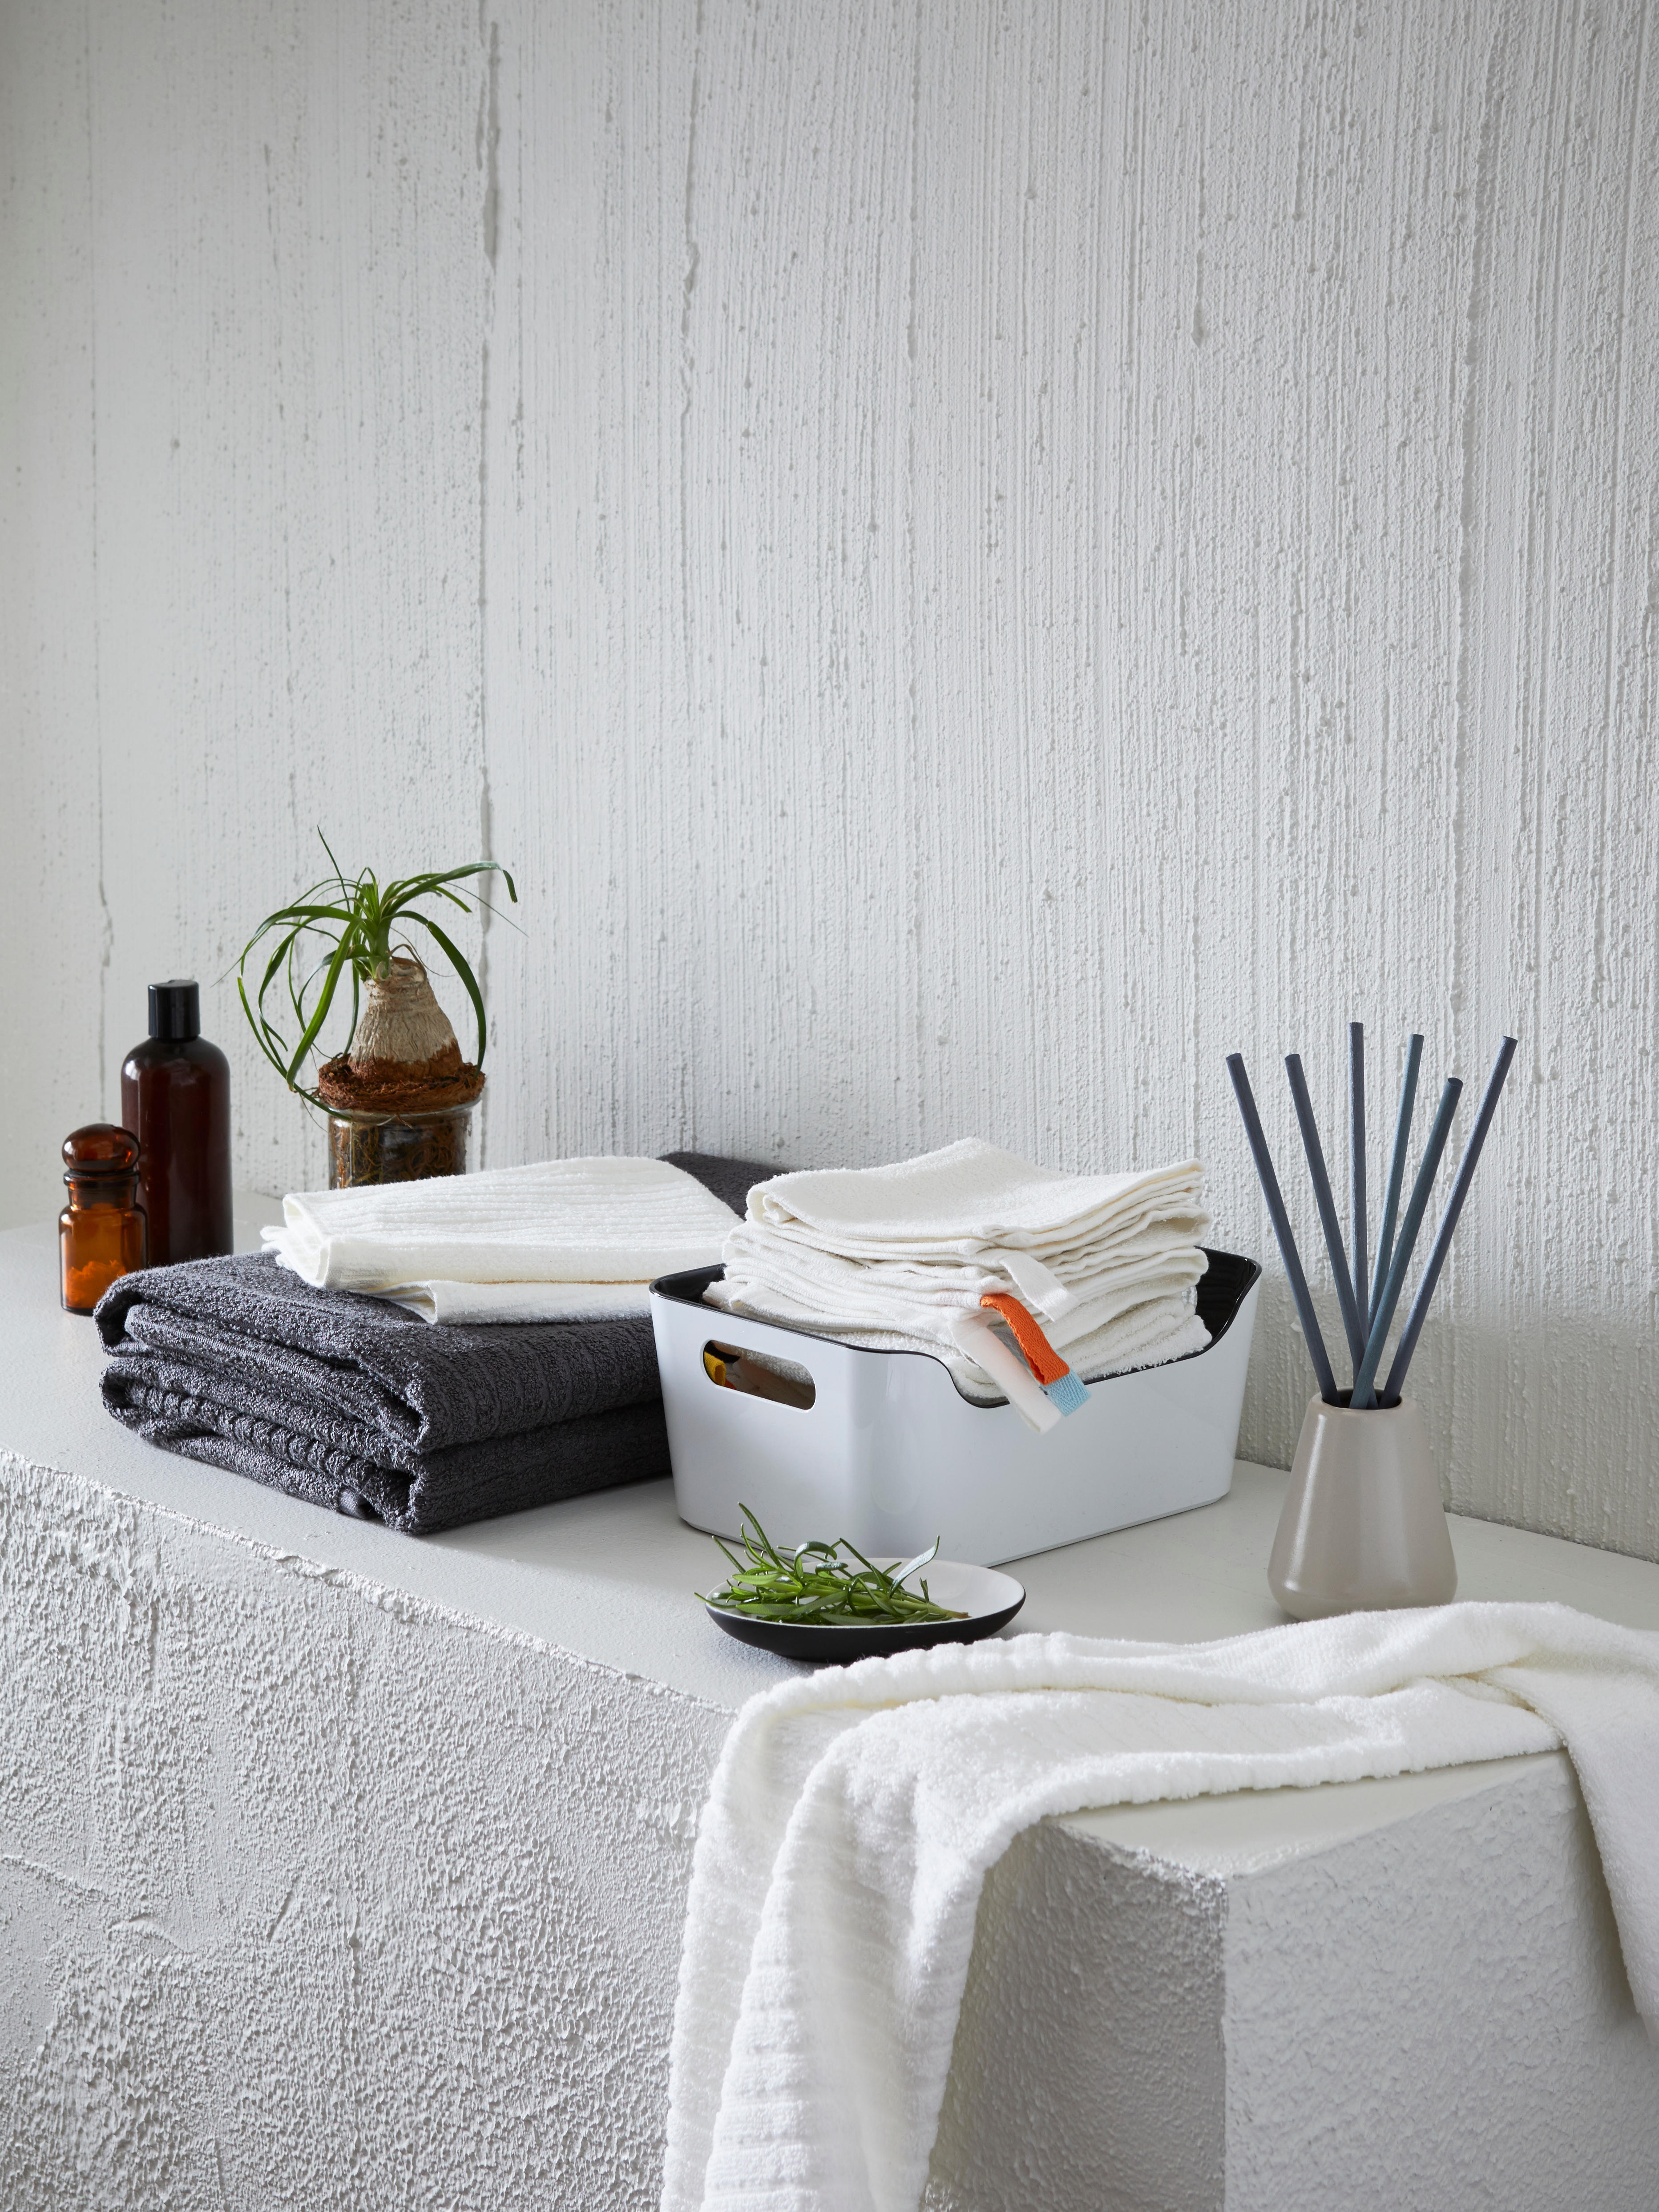 VÅGSJÖN bath towels piled on a shelf next to a box of flannels, a dish of rosemary, bottles, a plant and incense sticks.